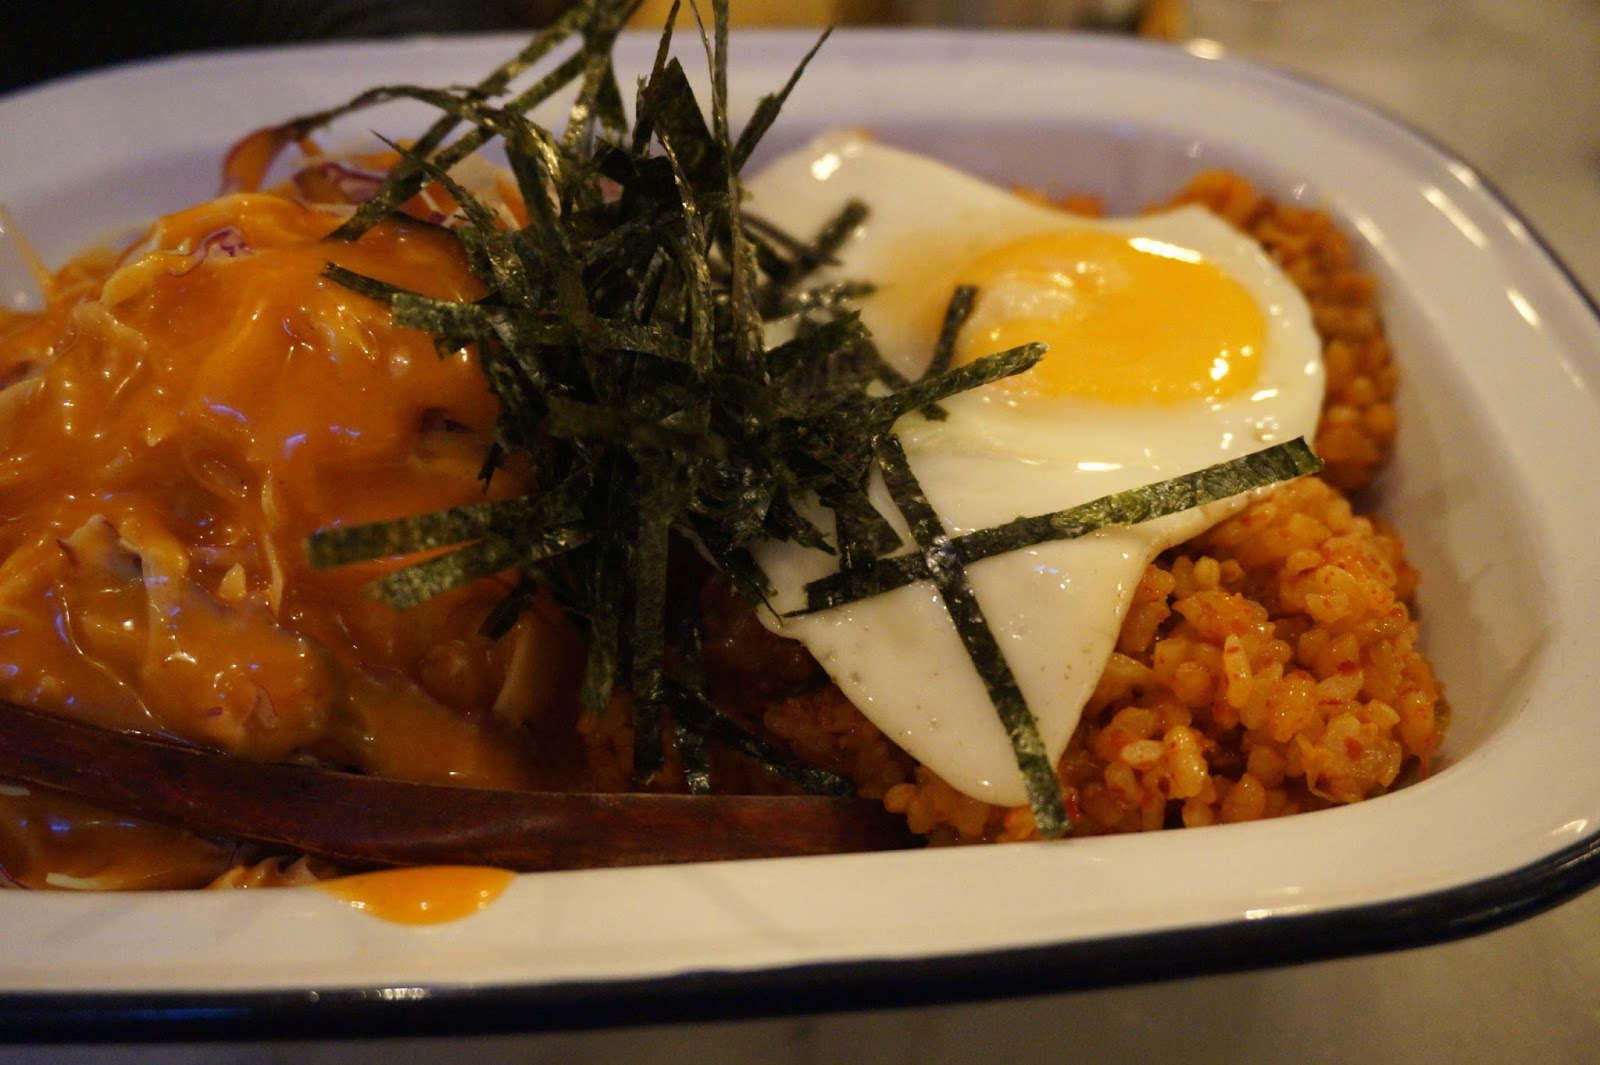 Korean style kimchi bacon paella with a perfectly cooked fried egg on top